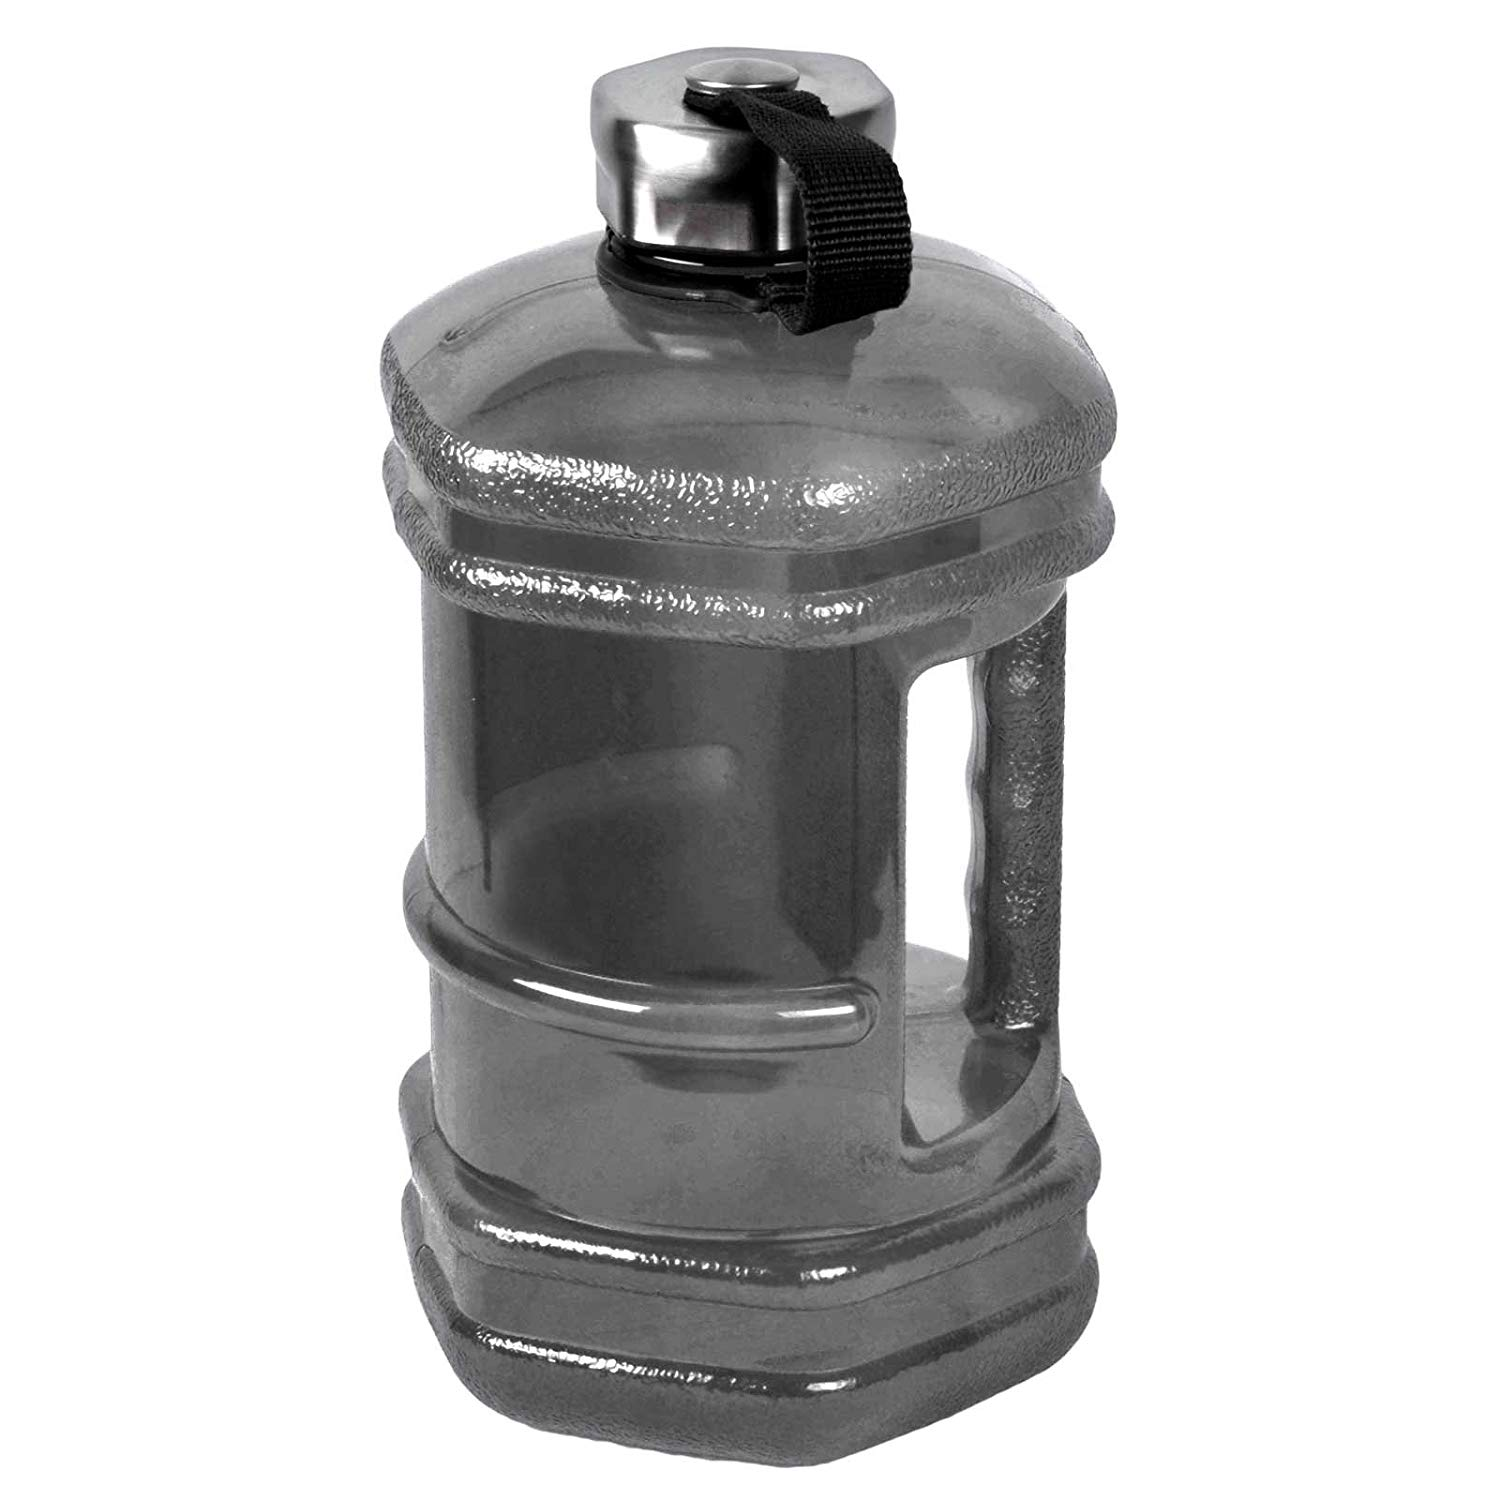 2.3 Liter Hexagon BPA Free Reusable Plastic Drinking Water Bottle Jug Container w/Hand Holder Canteen and Stainless Steel Cap